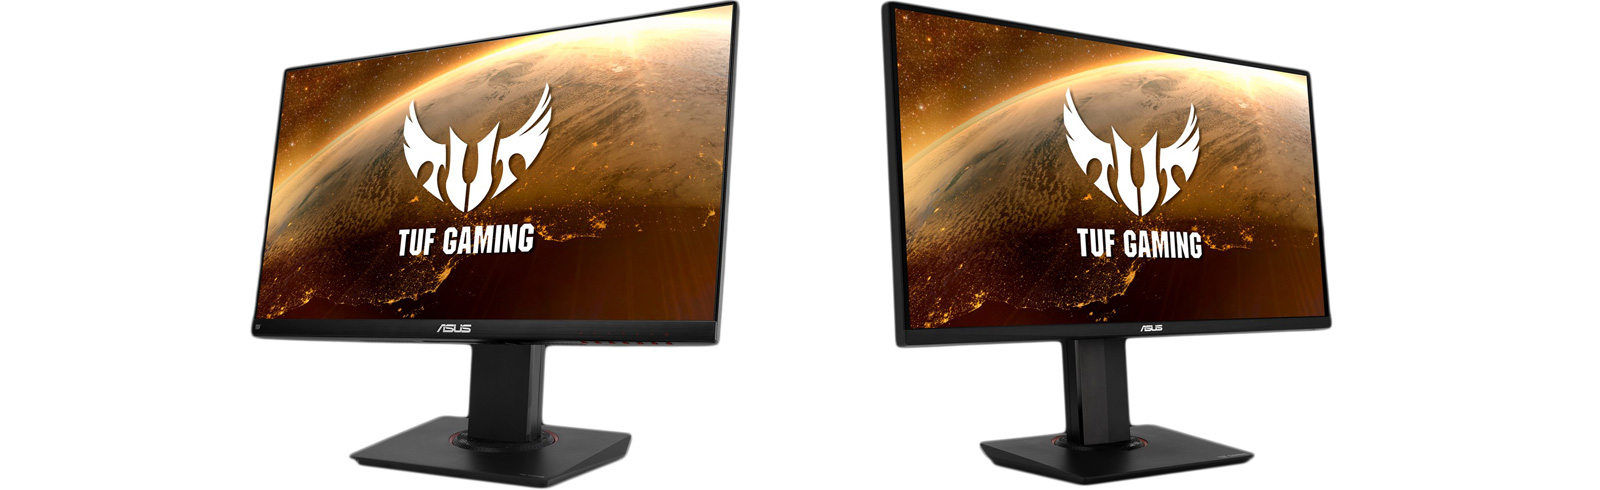 Asus expands its line of gaming monitors with the 4K UHD Asus TUF Gaming VG289Q